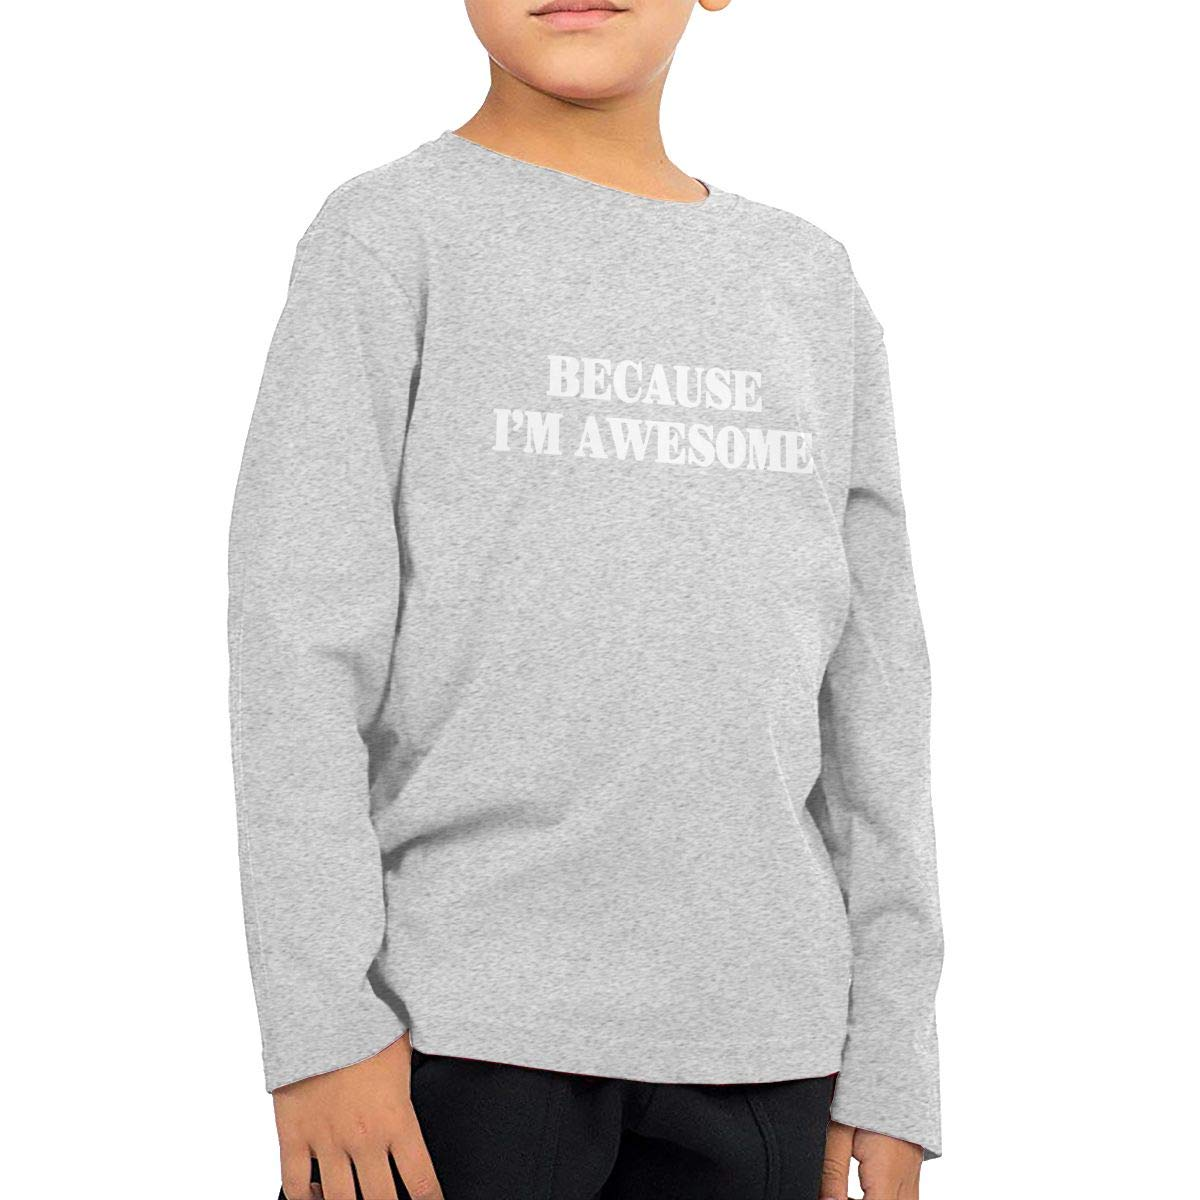 SKYAKLJA Im Awesome Childrens Gray Cotton Long Sleeve Round Neck T Shirt for Boy Or Girl